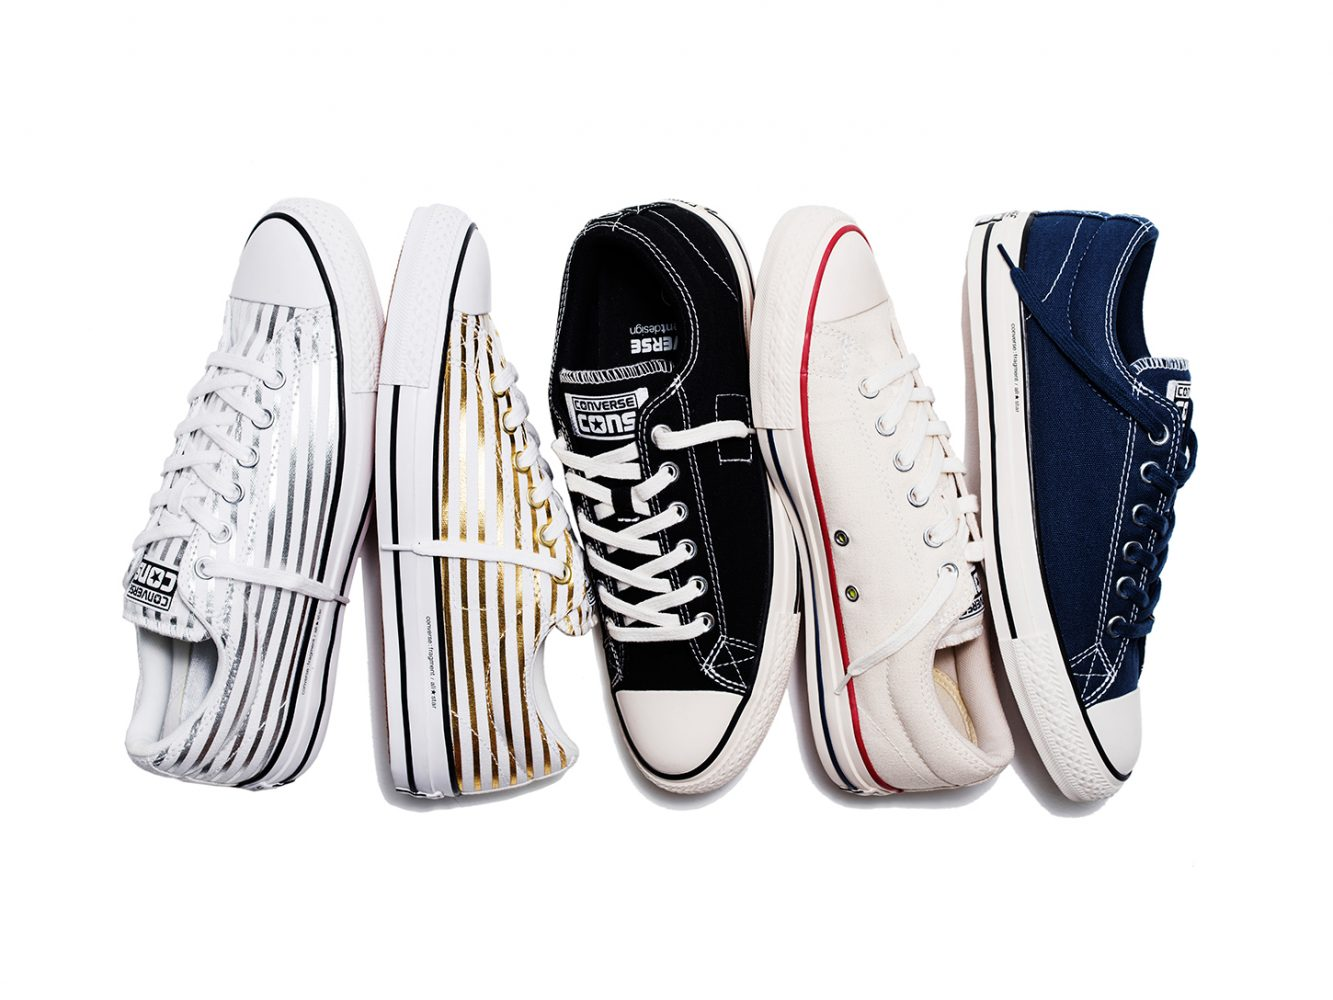 Converse_Cons_Fragment_Design_-_Group_Product_Shot_original